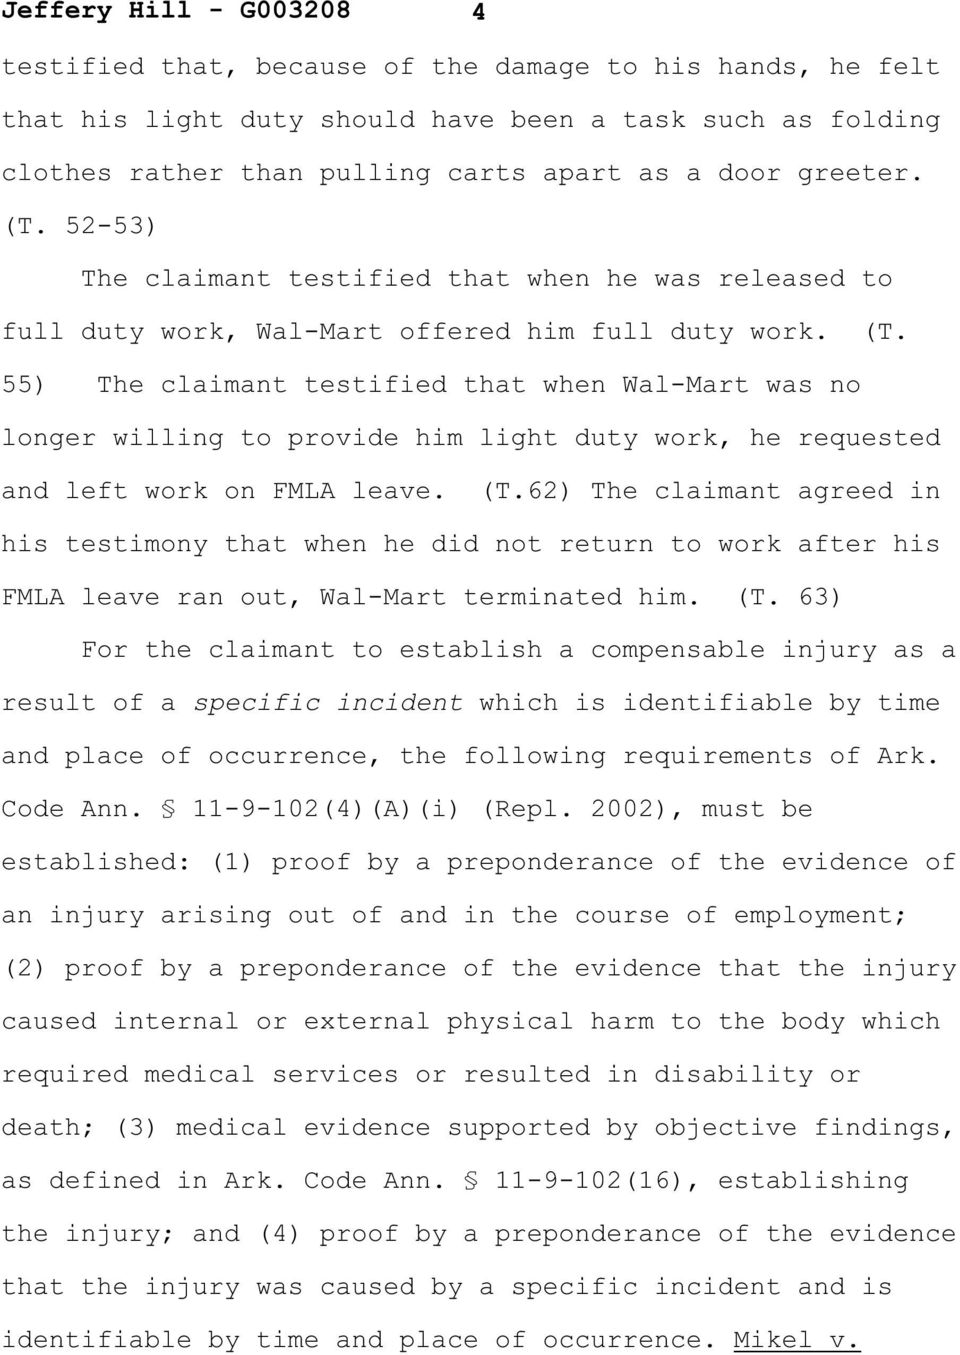 55) The claimant testified that when Wal-Mart was no longer willing to provide him light duty work, he requested and left work on FMLA leave. (T.